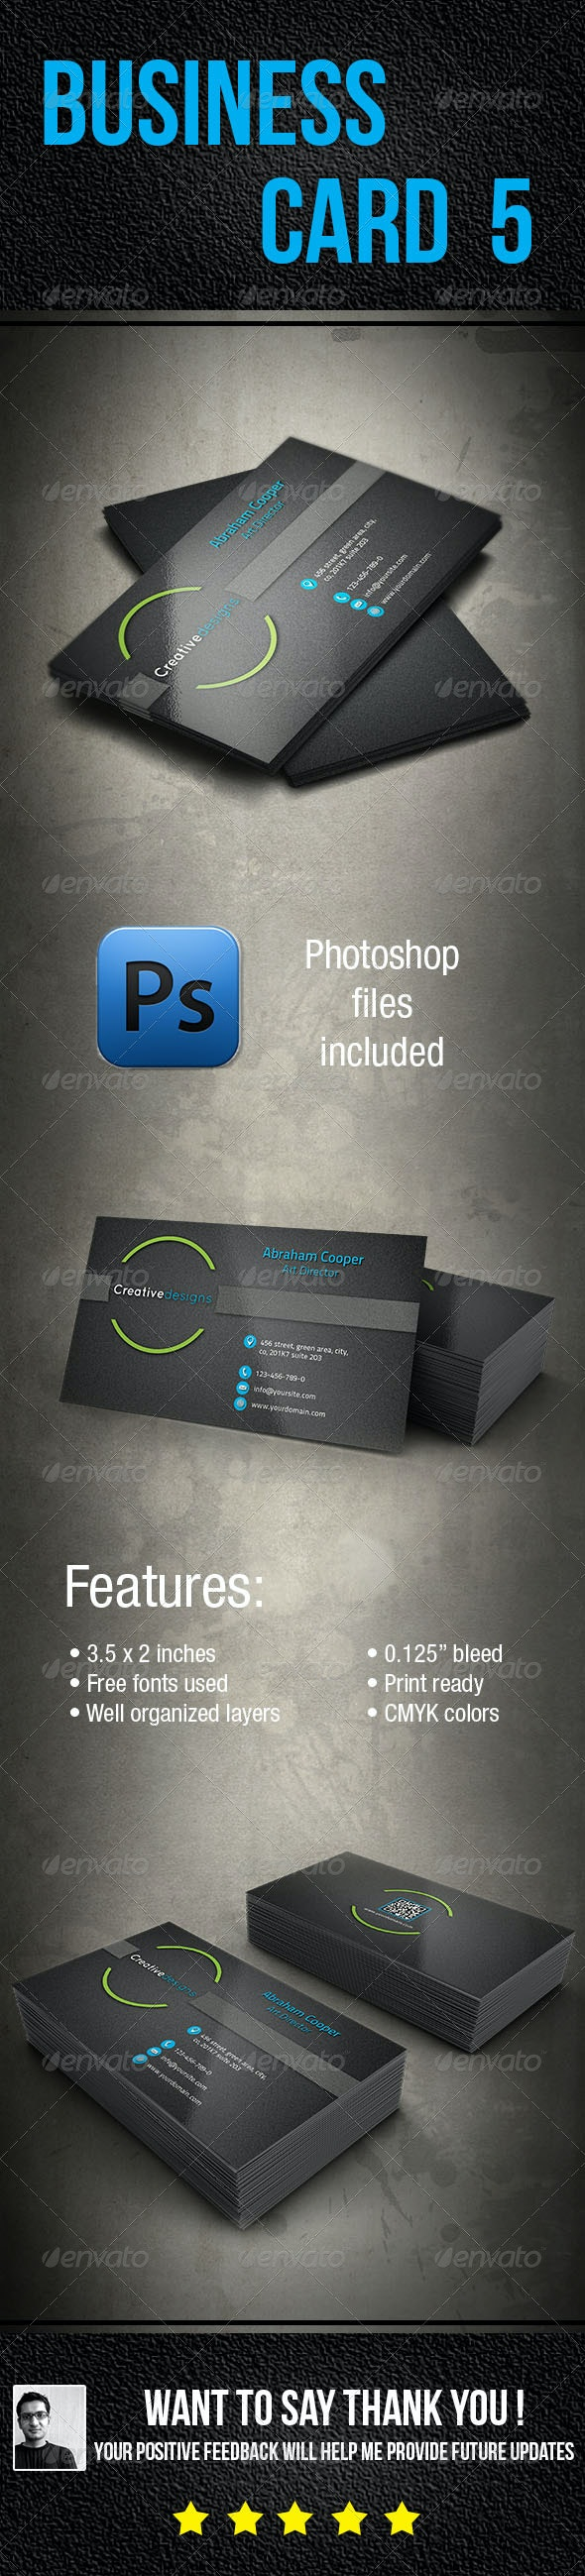 Business Card 5 - Creative Business Cards